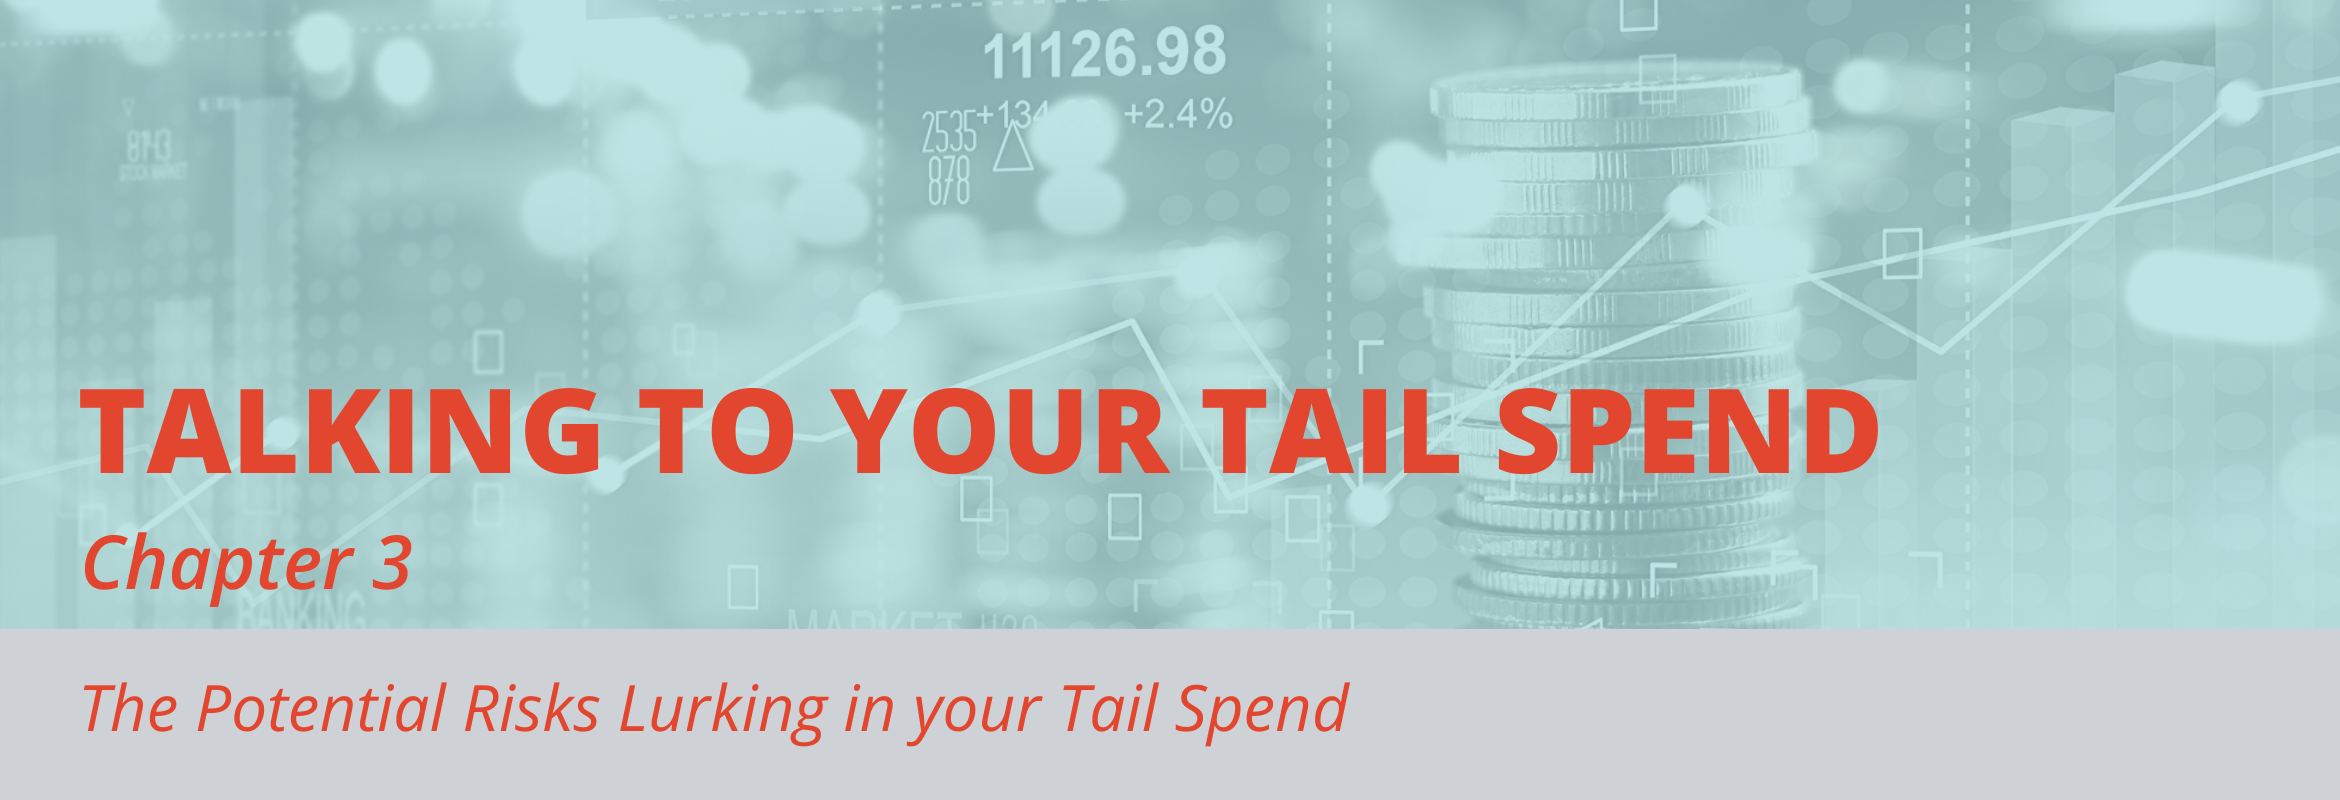 Unmanaged tail spend results in significant risks to organizations.